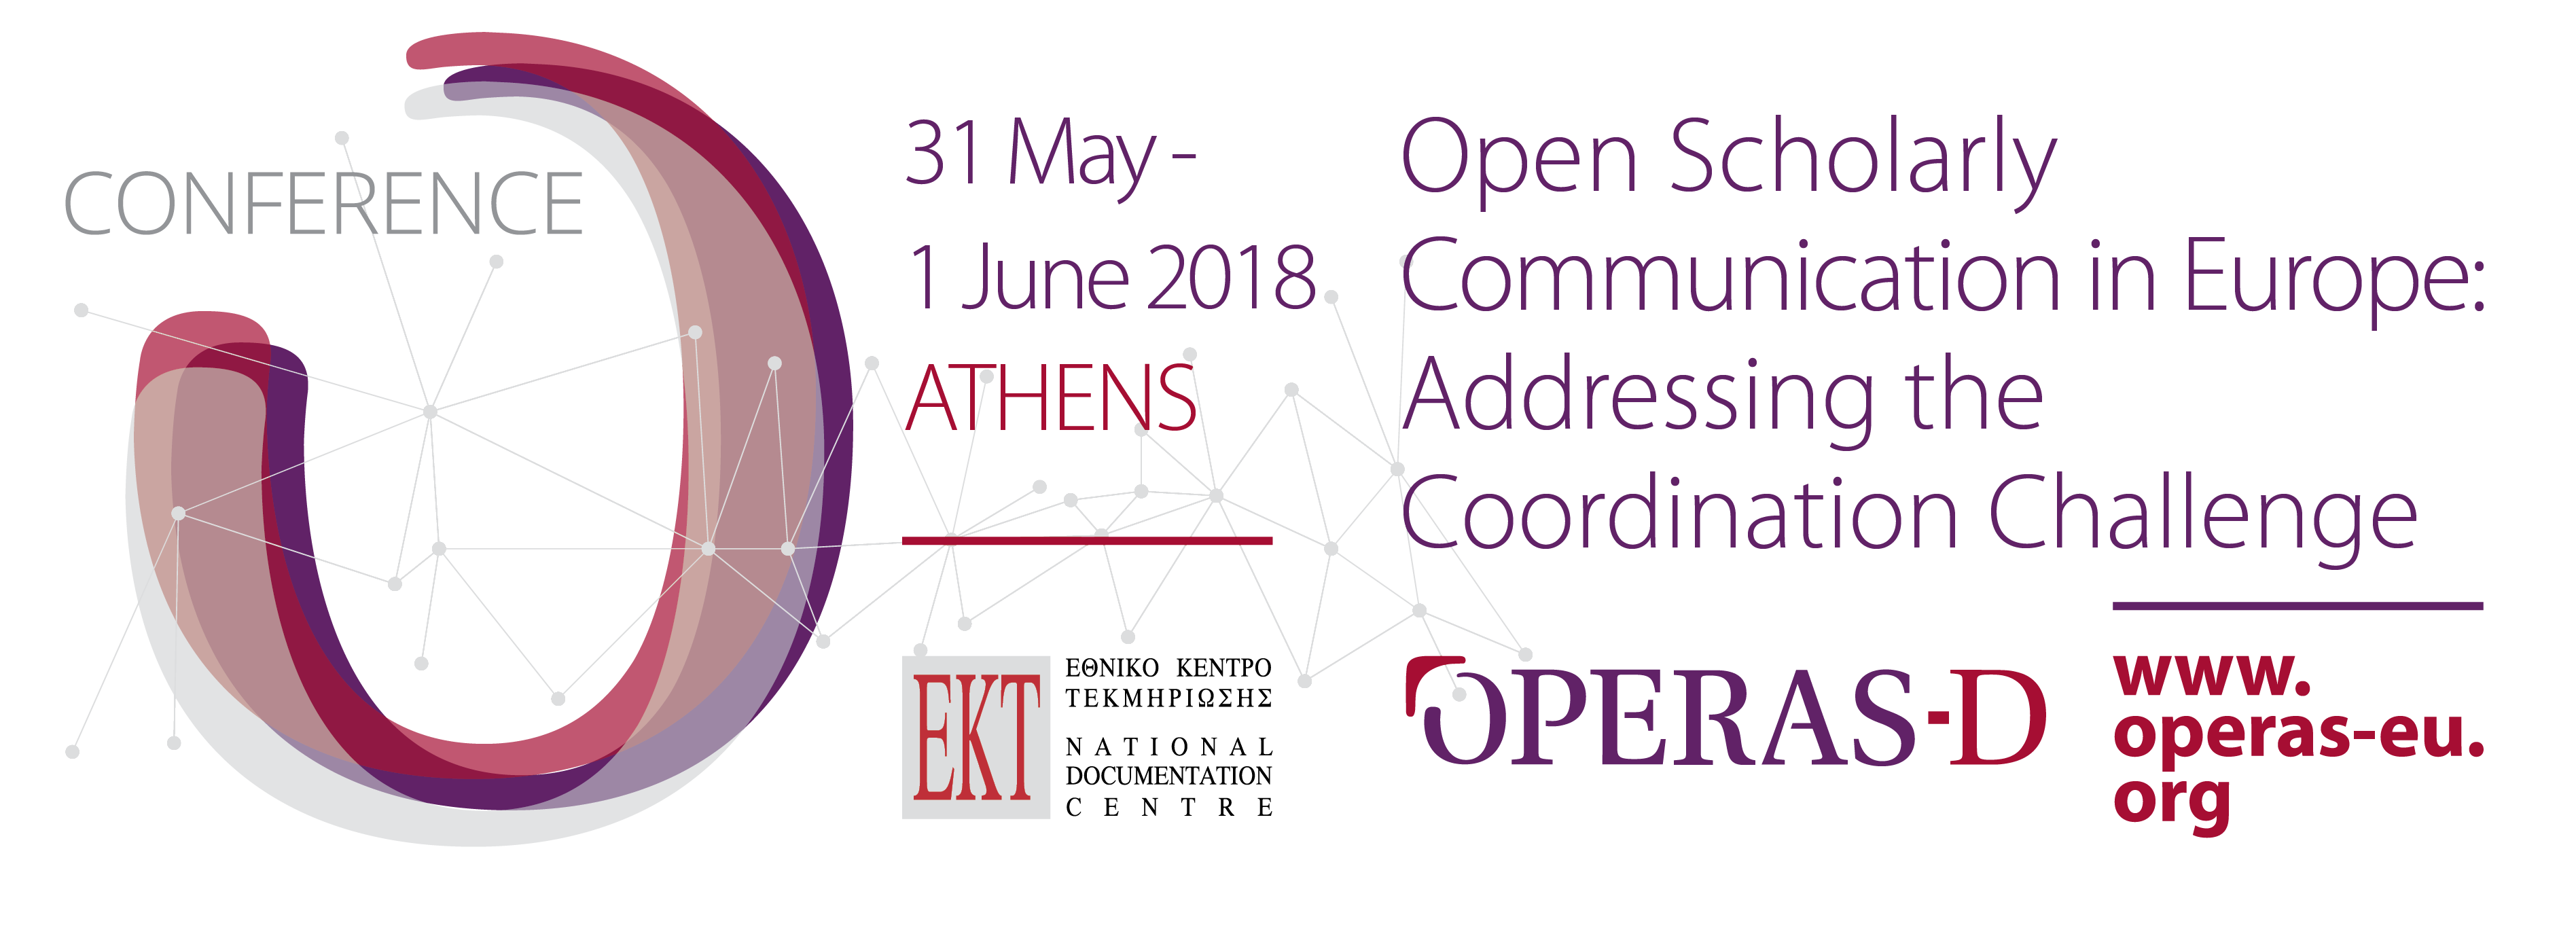 OPERAS Conference 31 May - 1 June 2018